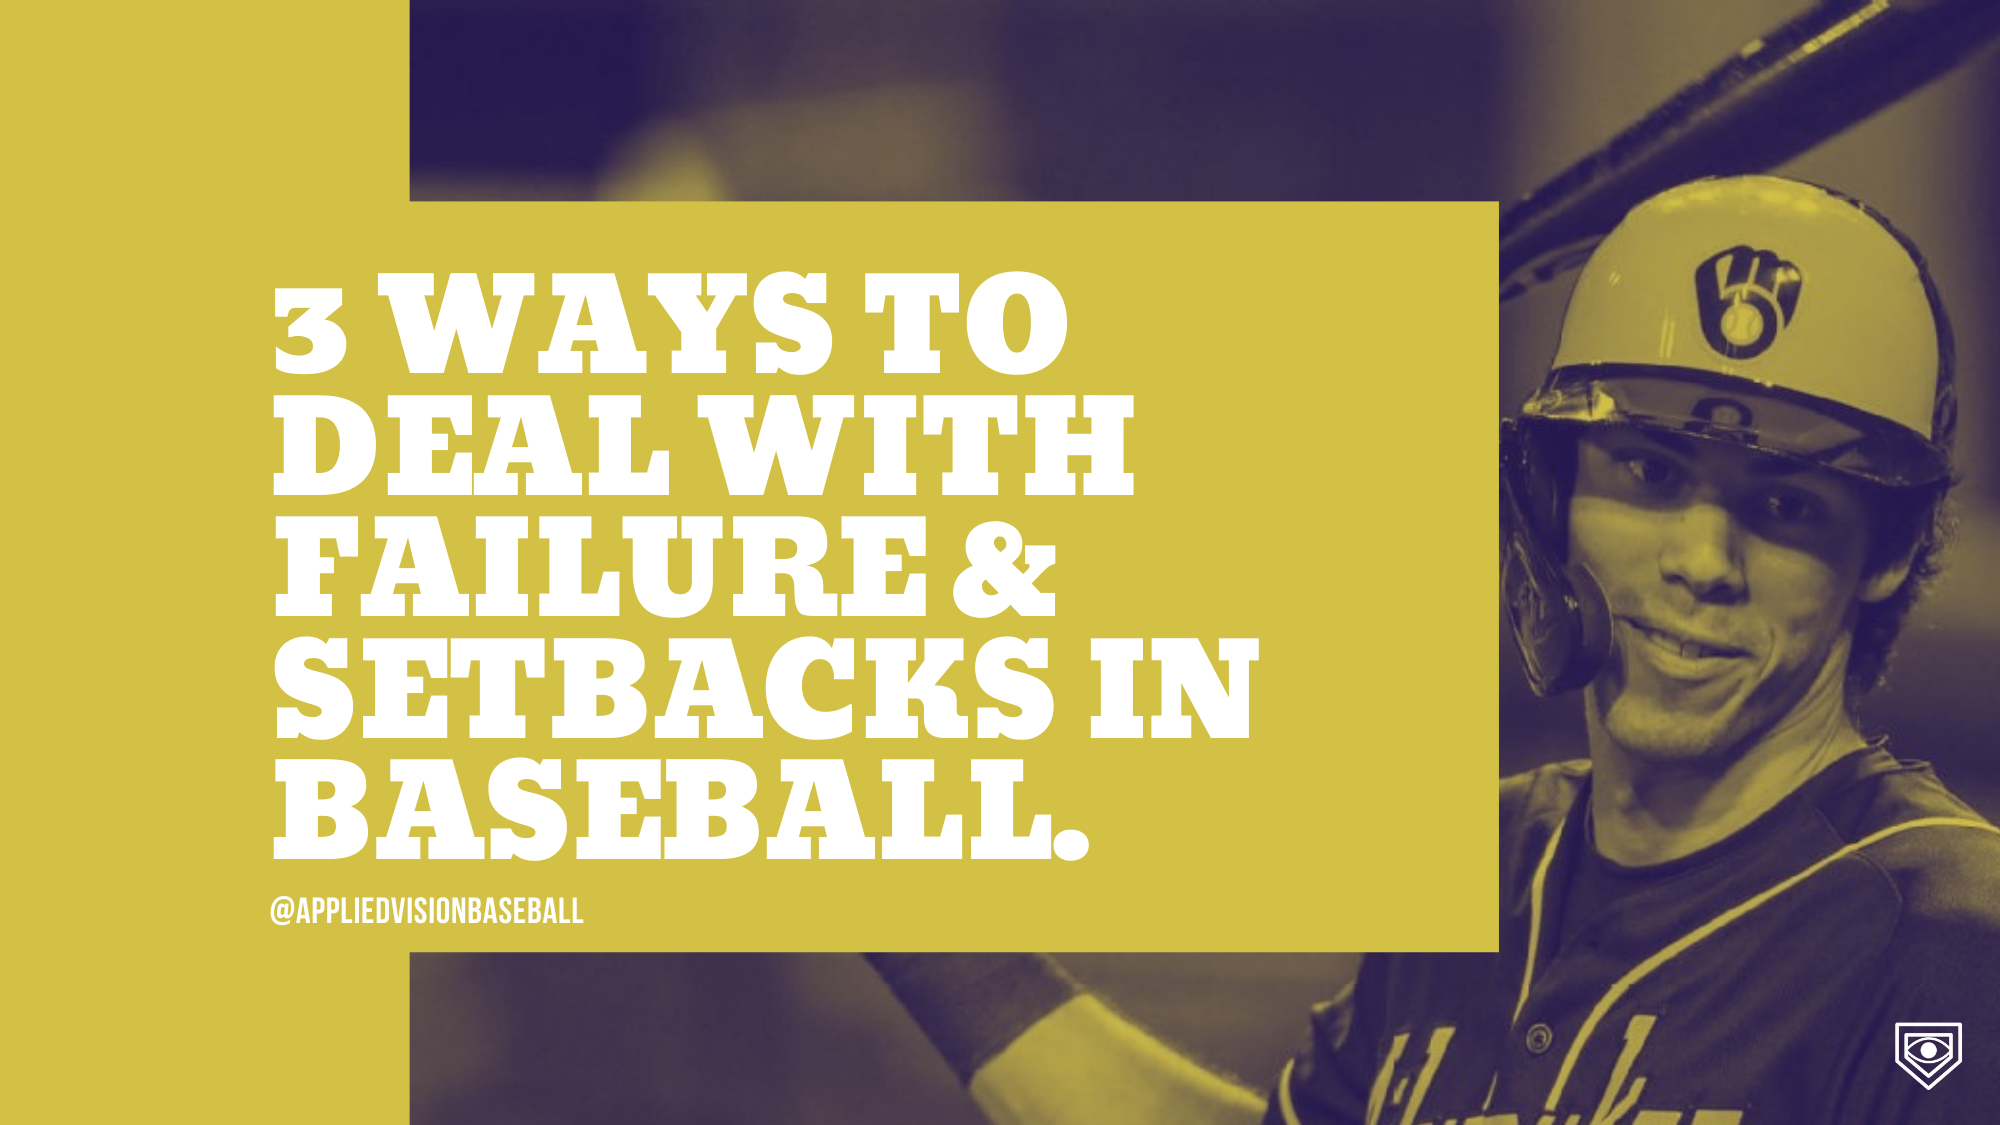 3 Ways To Deal With Failure & Setbacks in Baseball.